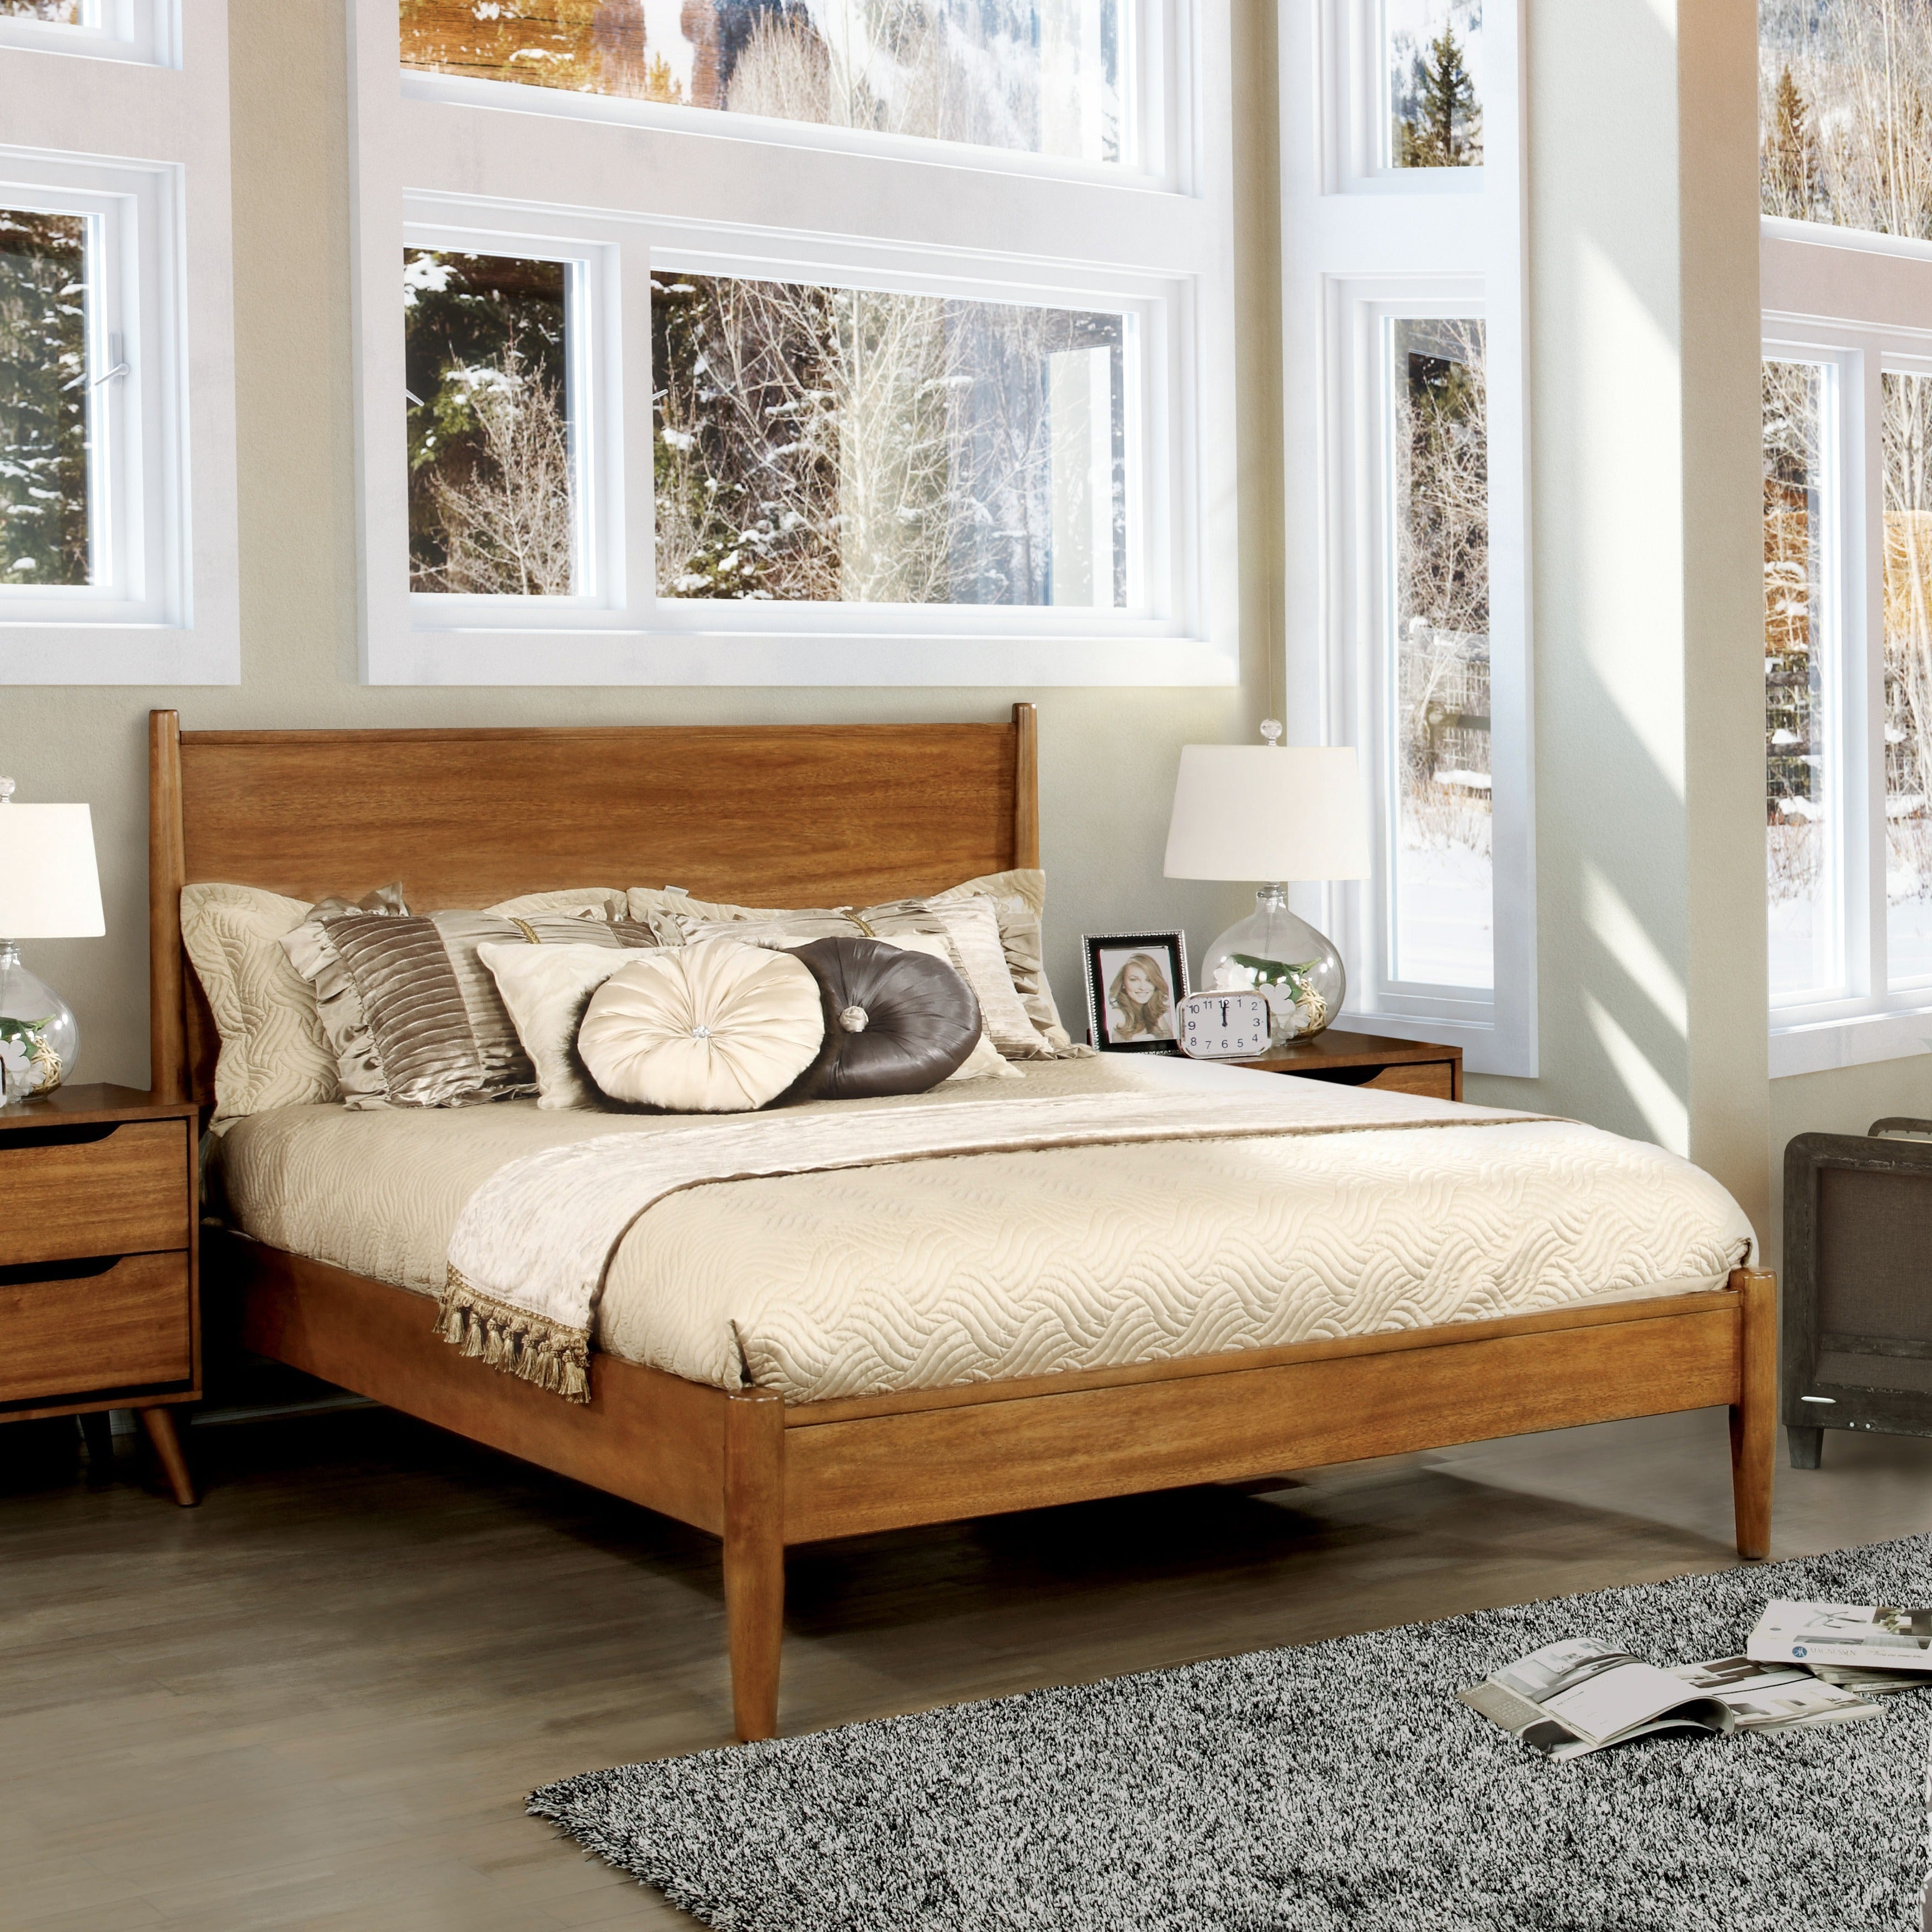 Gold Glass Dining Table, Shop Furniture Of America Fopp Mid Century Platform Bed Overstock 12442790 Oak California King